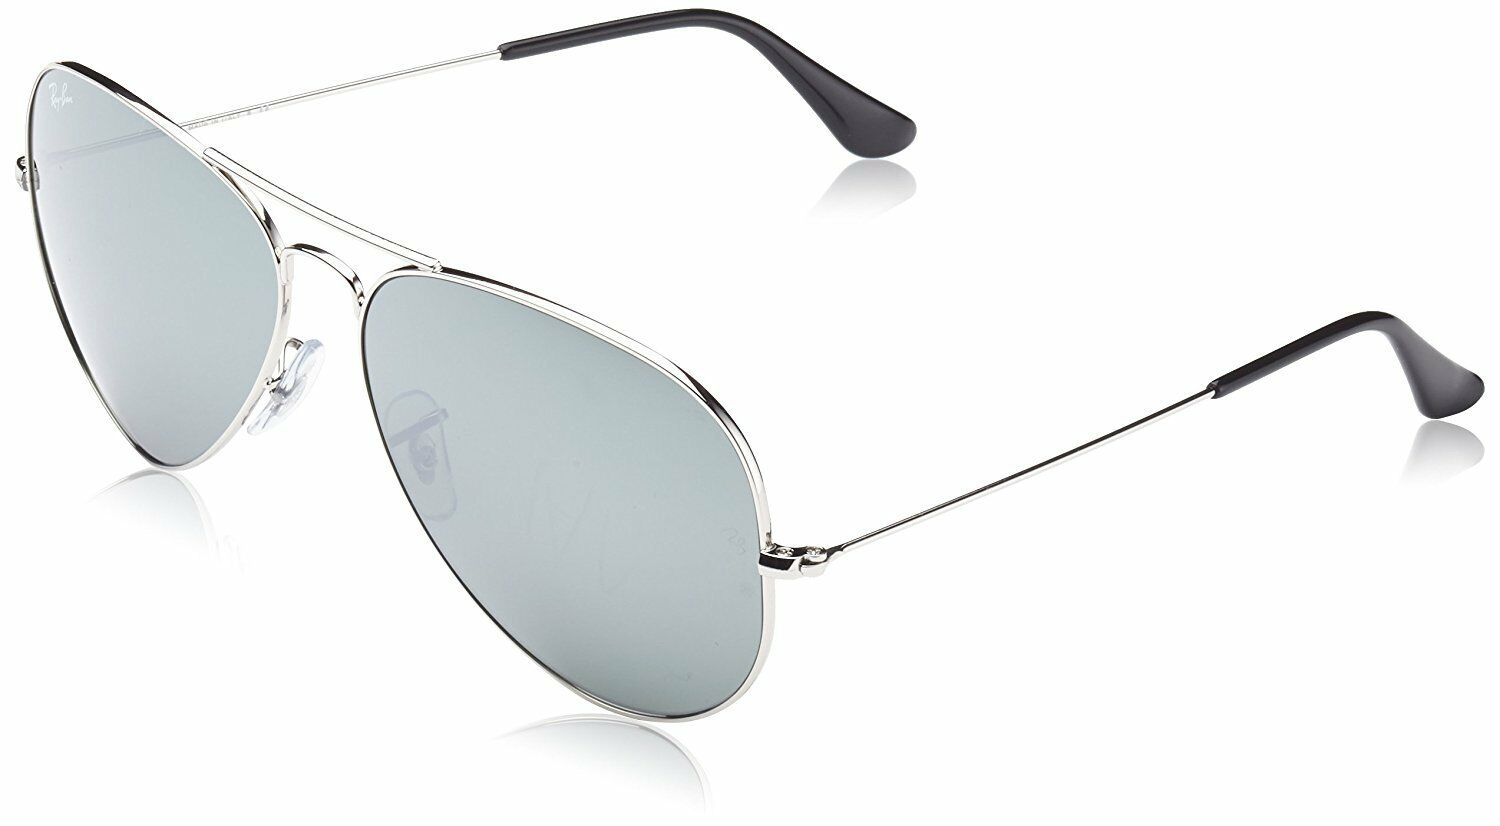 b0d7f61022 Ray Ban Aviator Silver Mirror Lens Rb3025 003 40 Flash Sunglasses RB Large  62 Mm for sale online